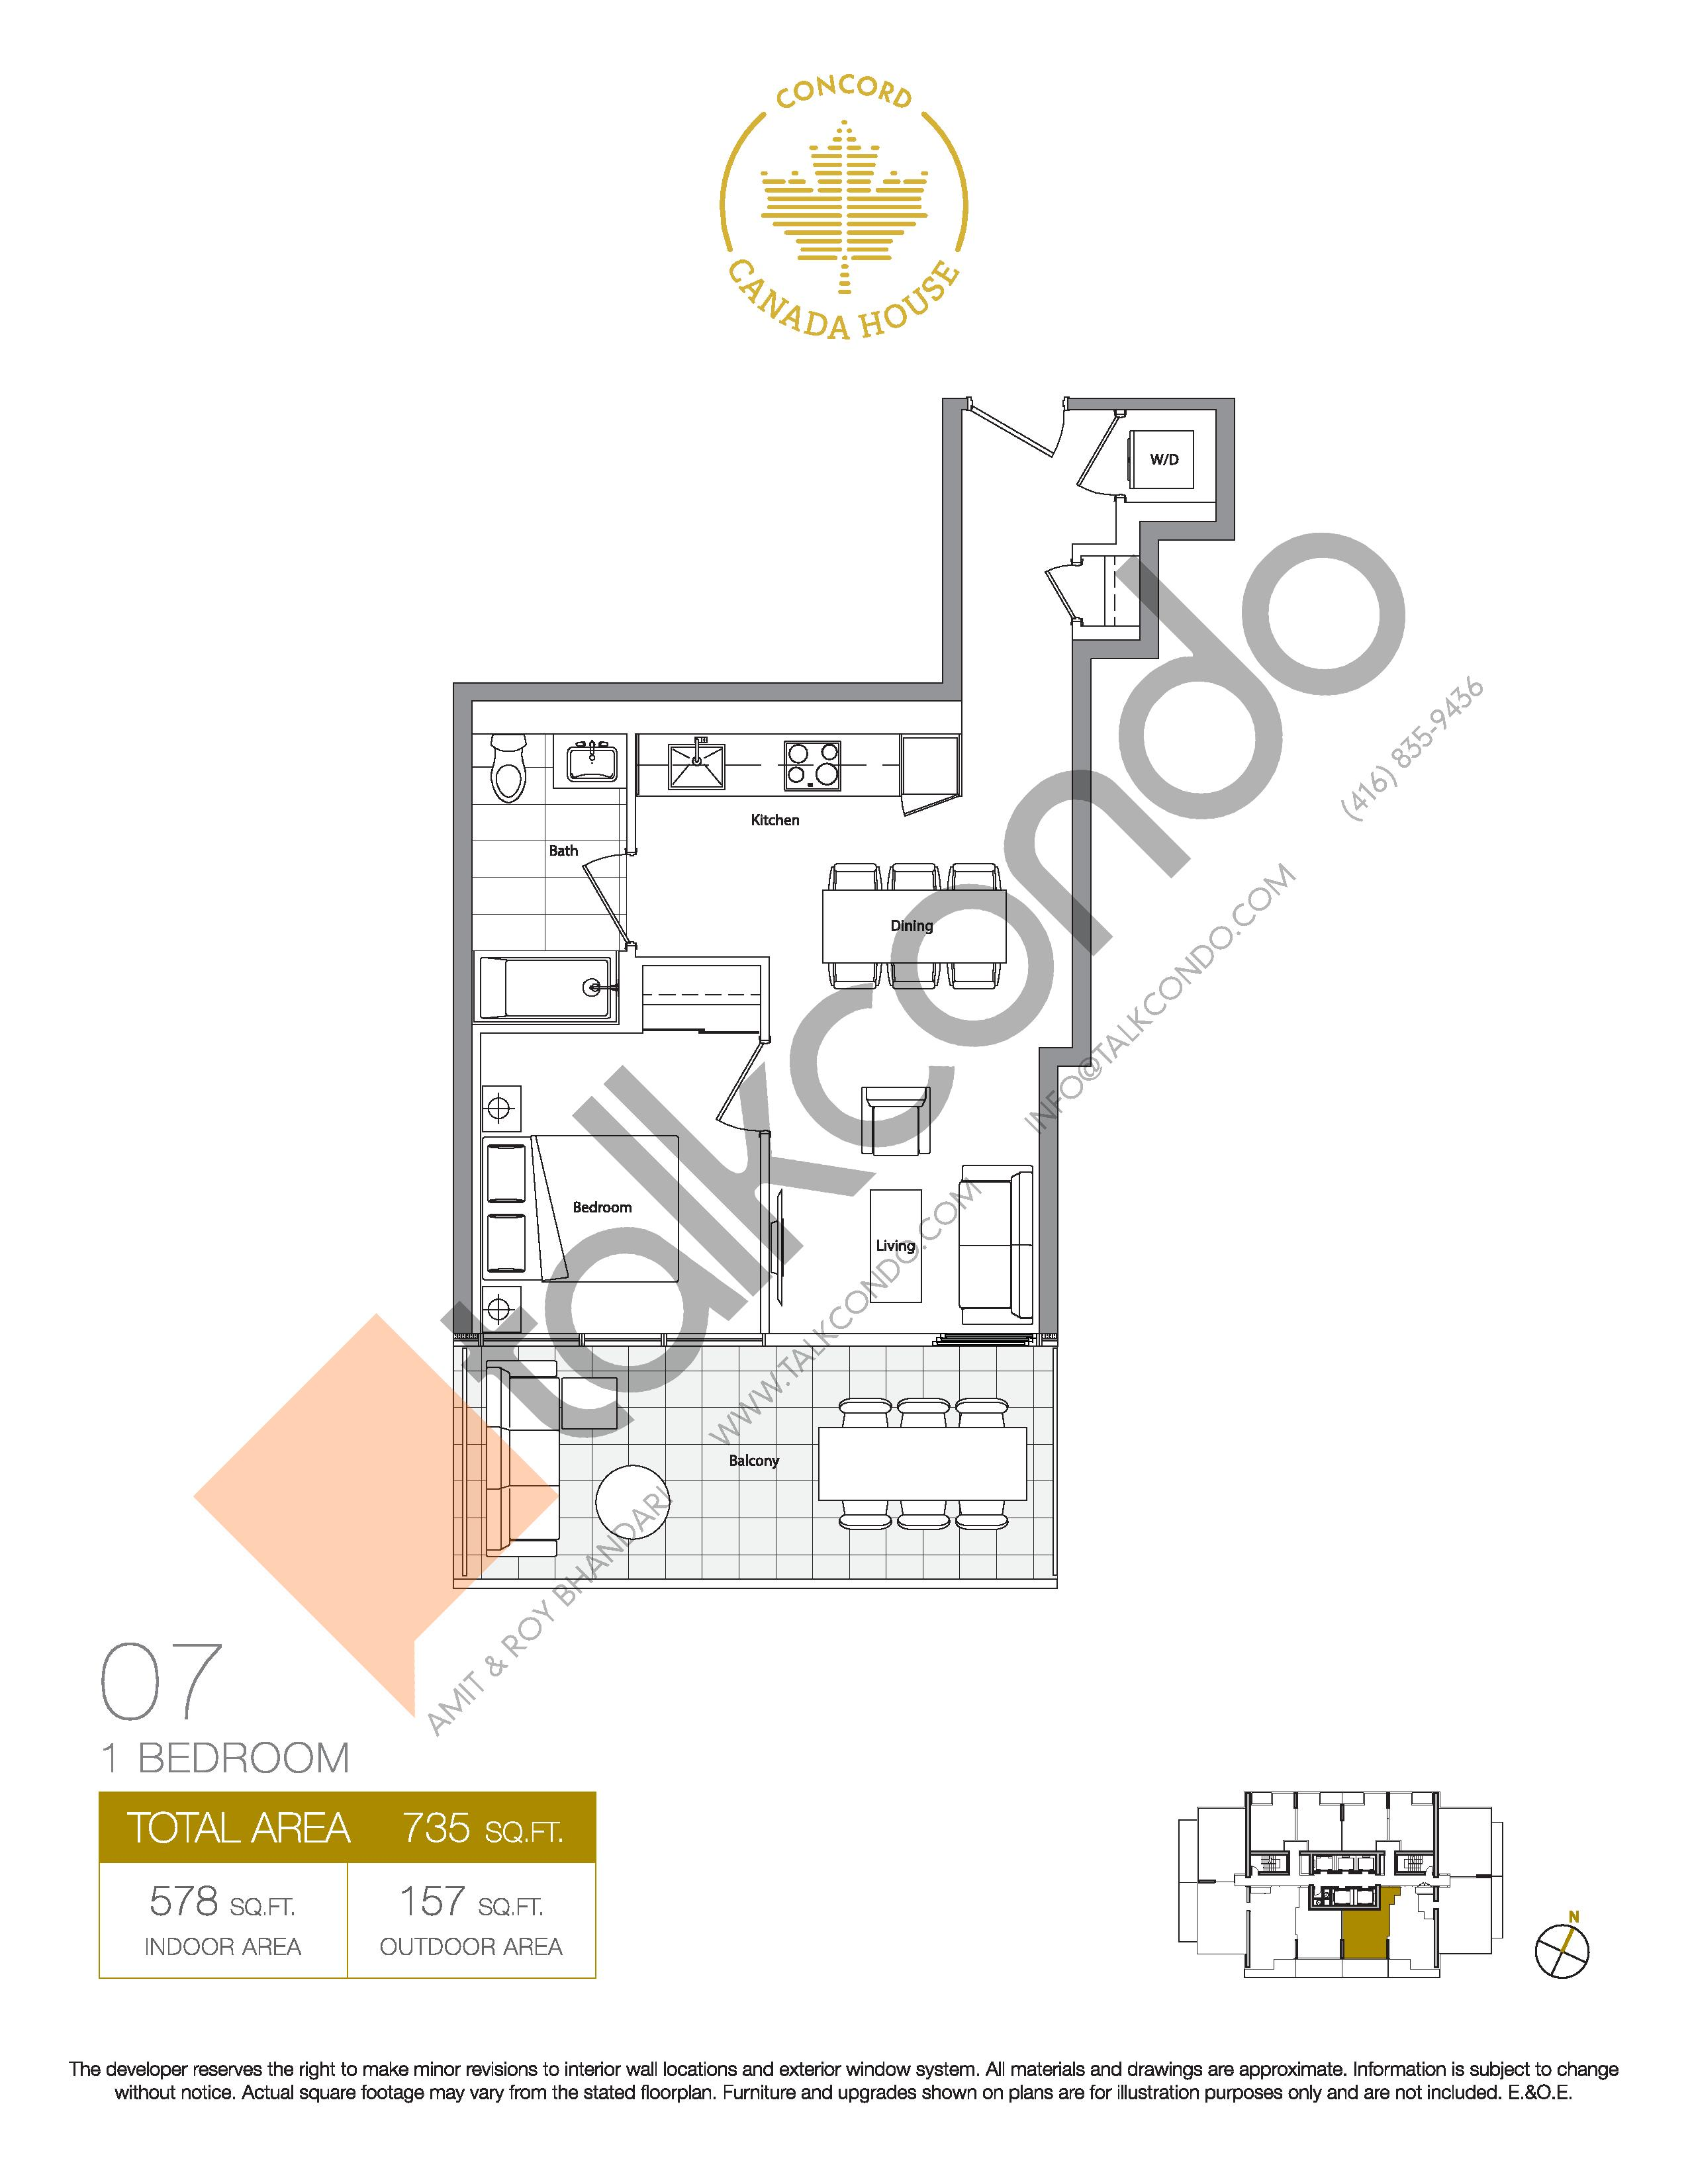 07 - East Tower Floor Plan at Concord Canada House Condos - 578 sq.ft